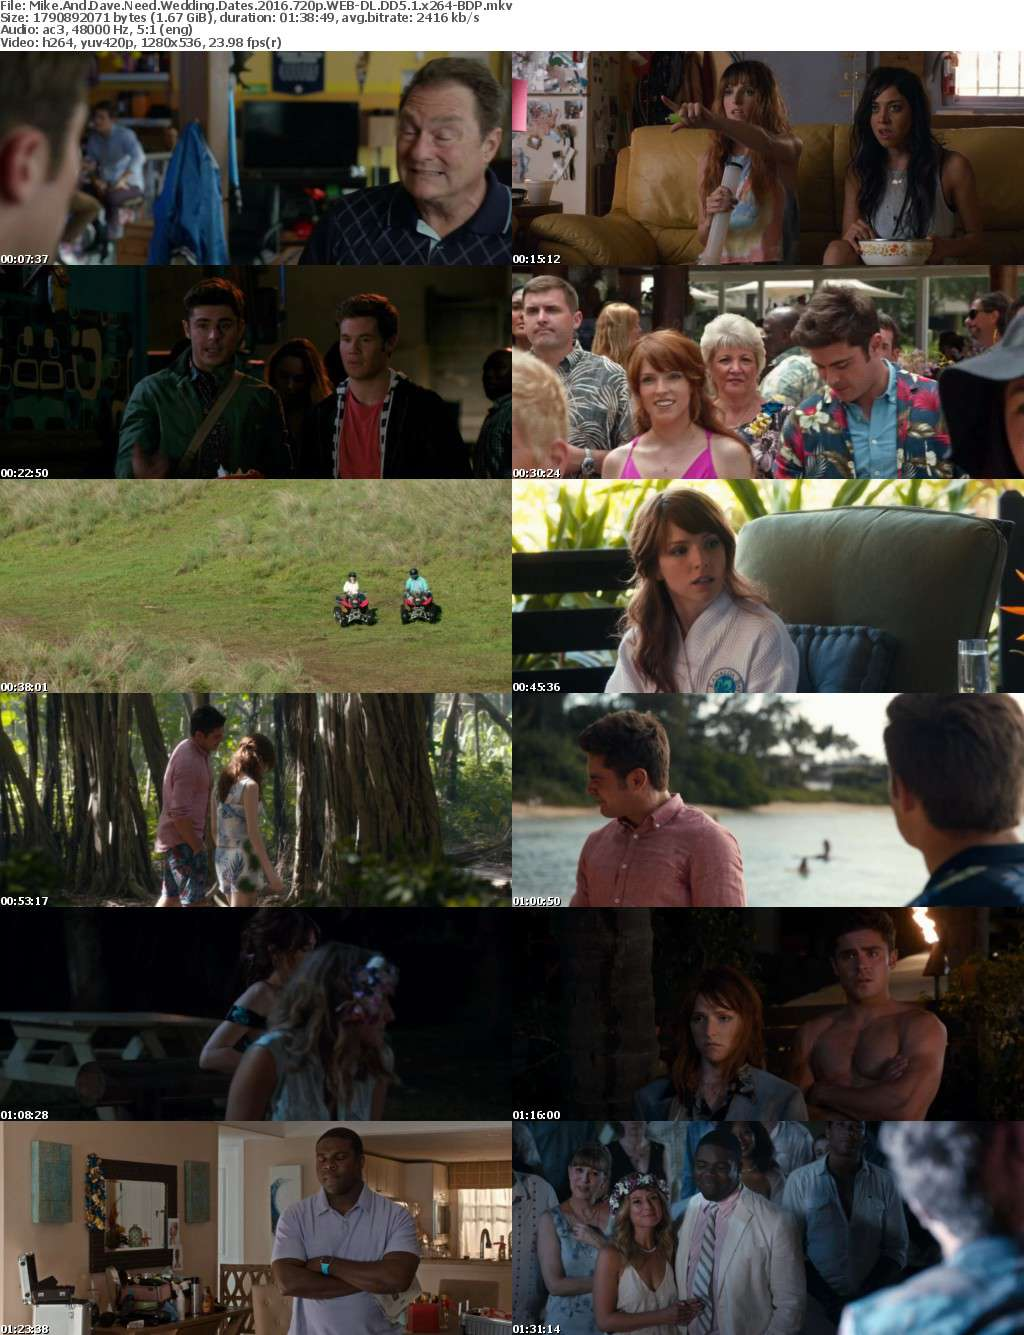 Mike And Dave Need Wedding Dates 2016 720p WEB-DL DD5 1 x264-BDP